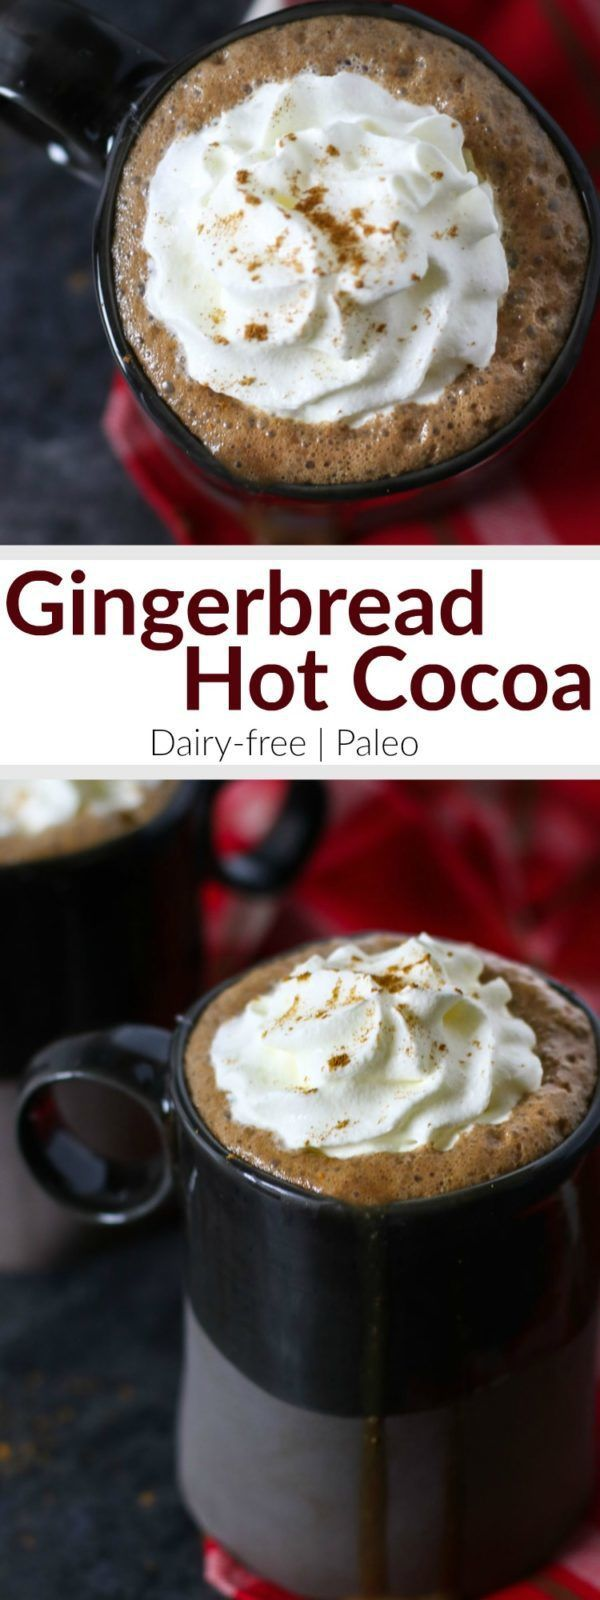 Dairy-free Gingerbread Hot Cocoa   In this Dairy-free Gingerbread Hot Cocoa that's sweetened with honey and molasses and spiced just right you get it all - cookies and cocoa - in one soul-warming mug topped with whipped coconut cream, if you please   Paleo   therealfoodrds.com